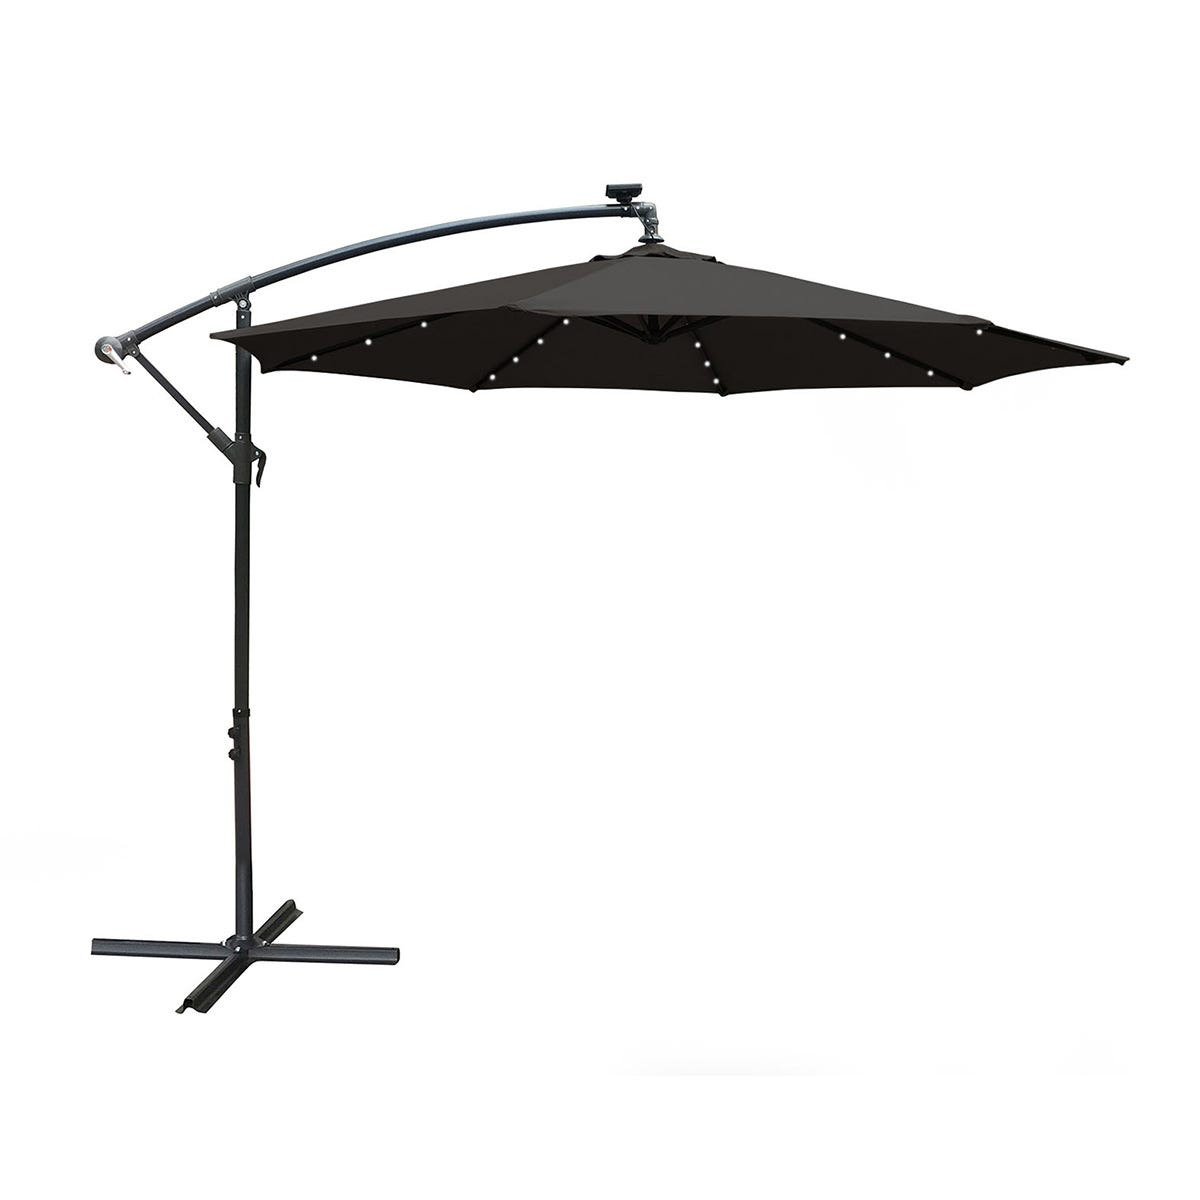 Airwave 3m Banana Hanging Parasol with Solar LED Spotlights (base not included) - Black